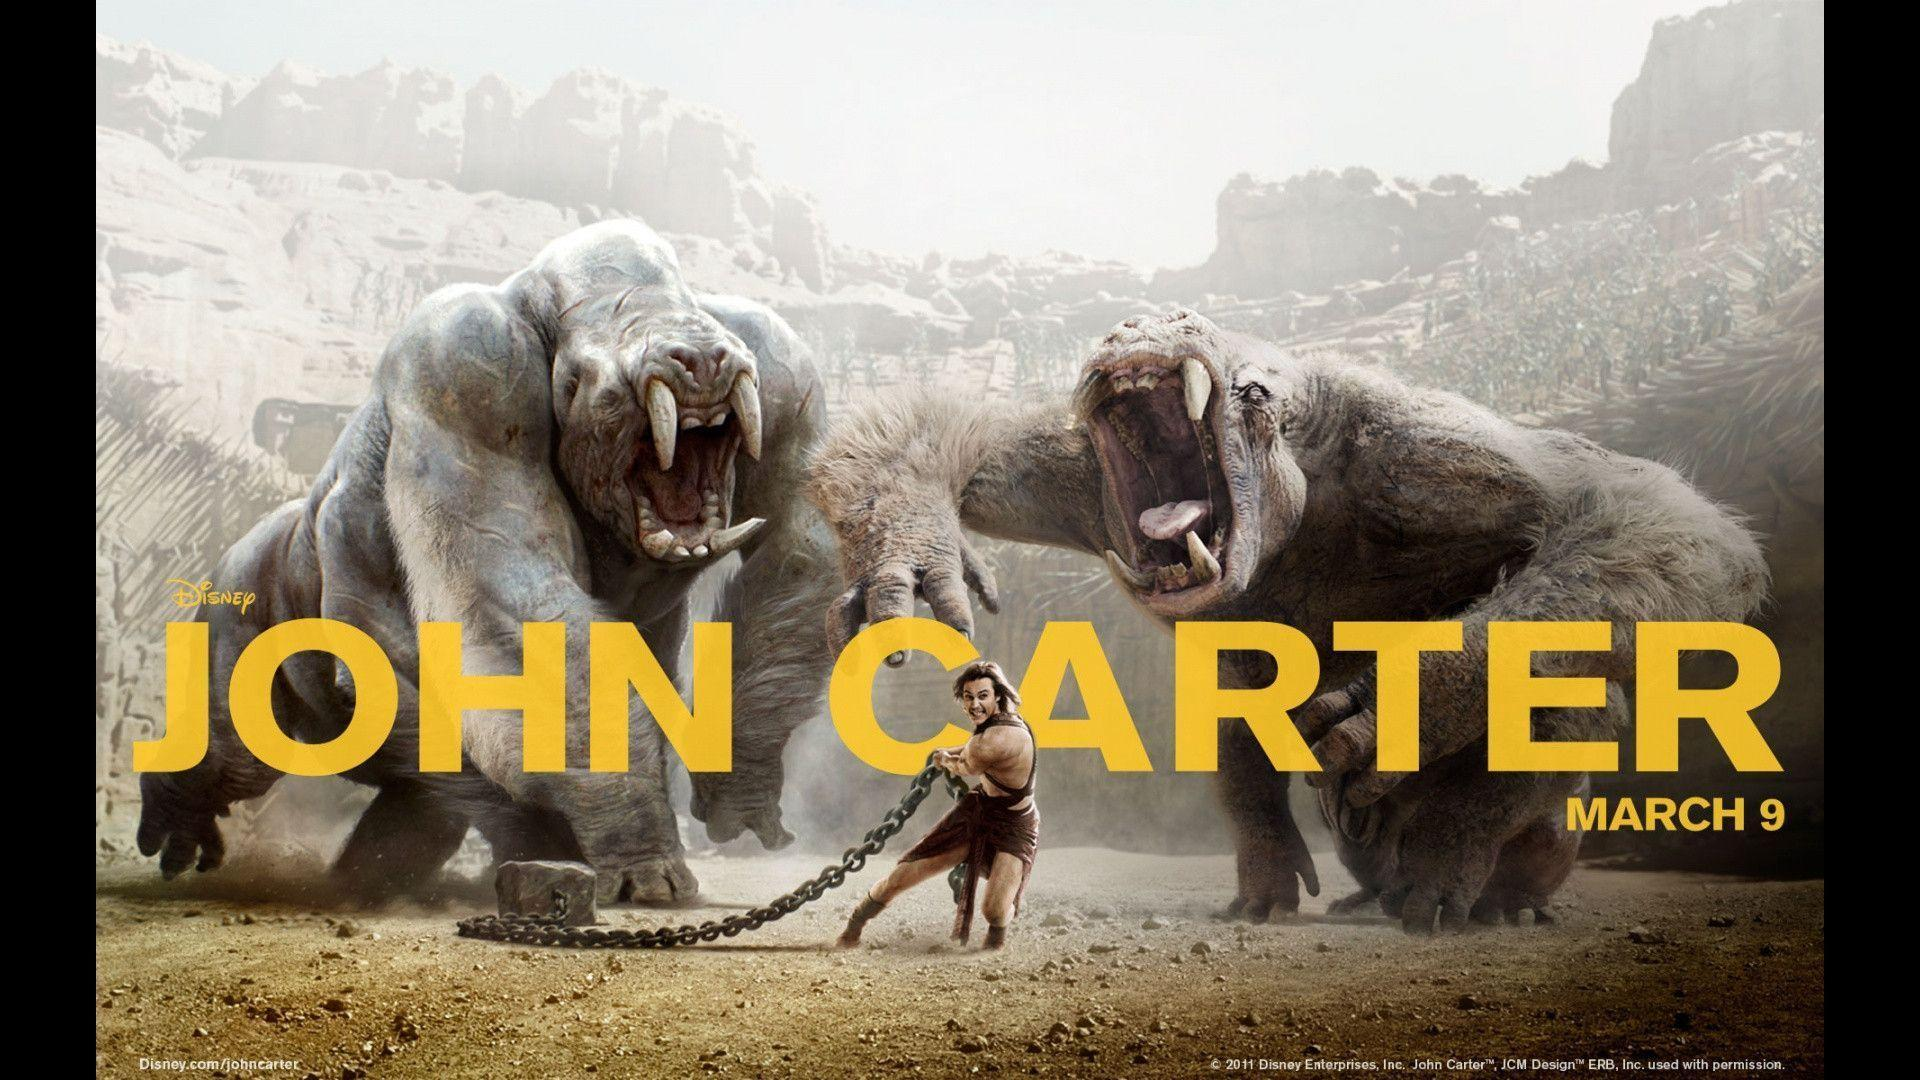 John Carter Movie Hd Wallpapers 1080p